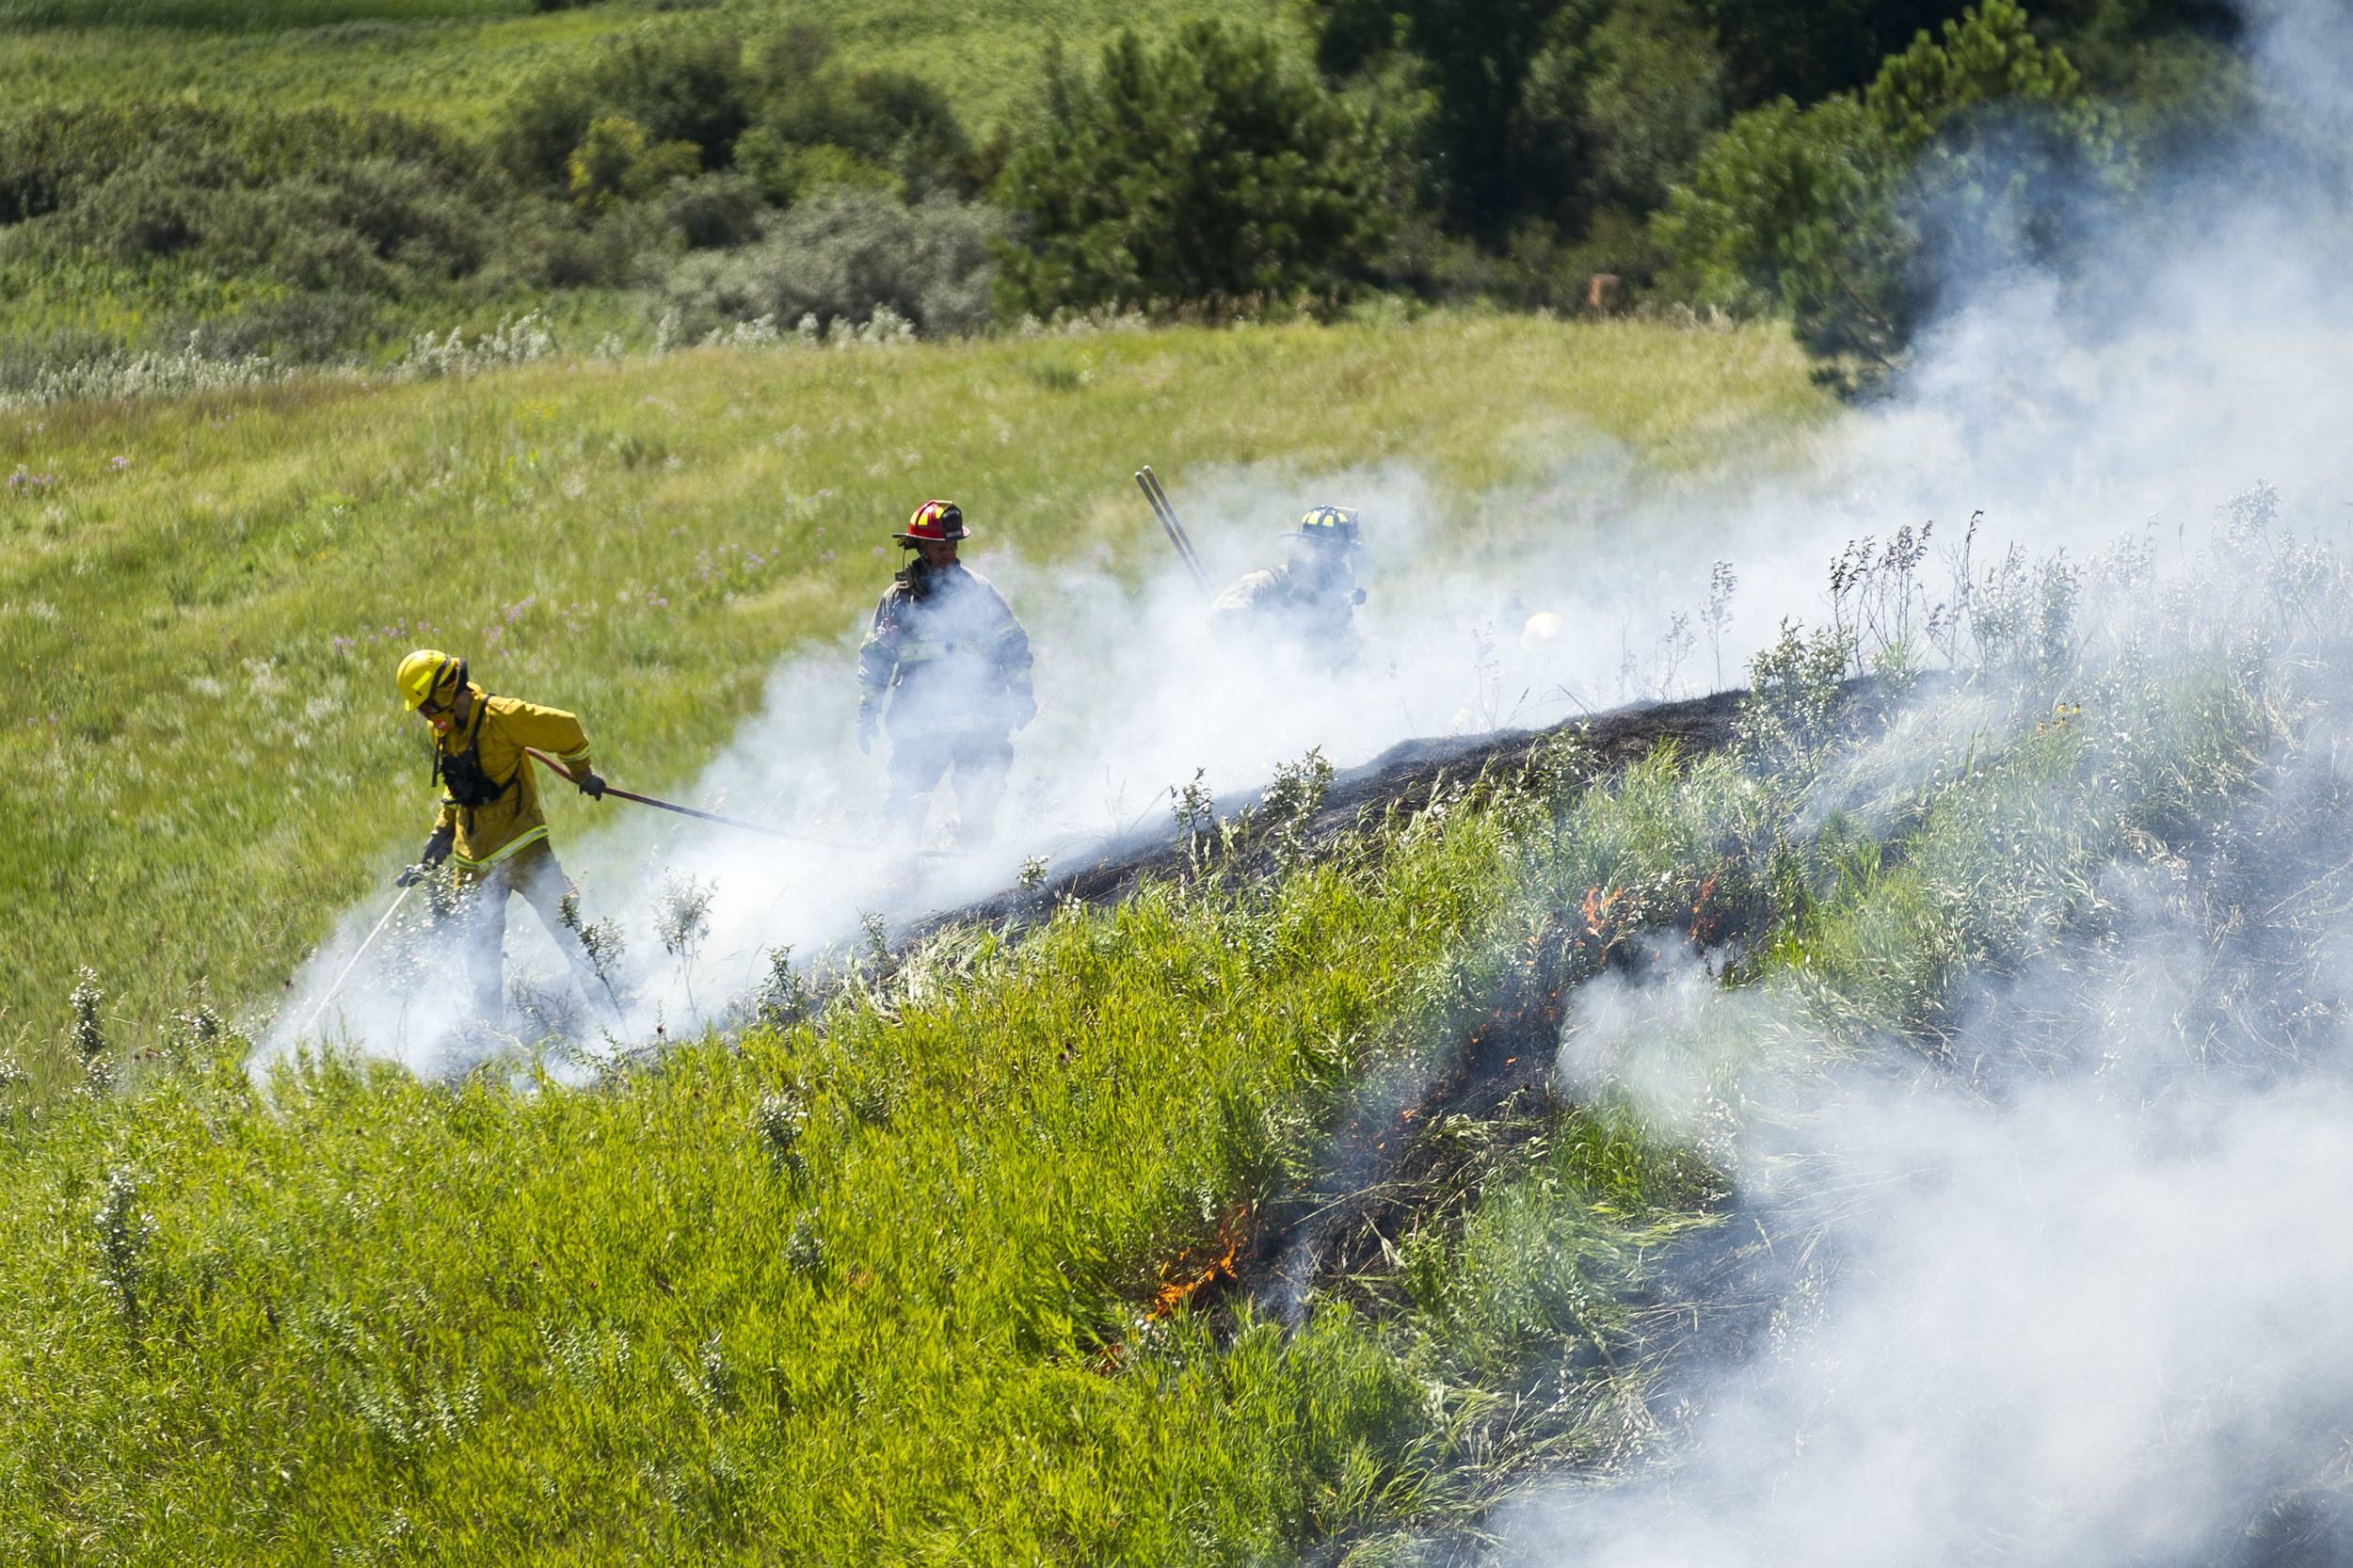 Firefighters extinguish a brushfire behind the Wal-Mart in Minot, ND.